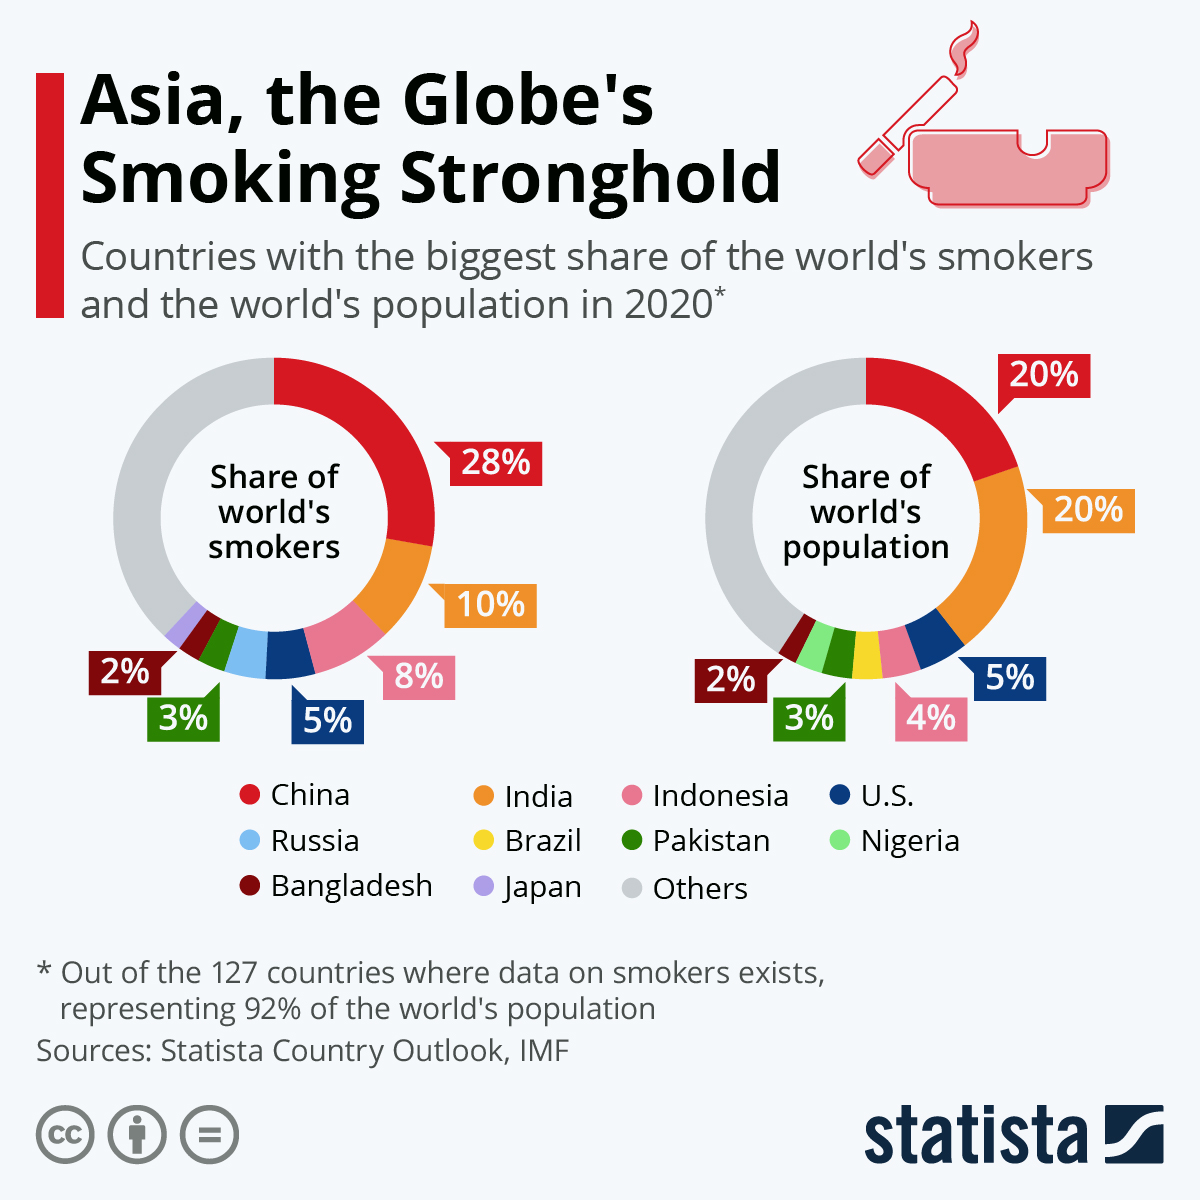 Asia is the continent that smokes the most